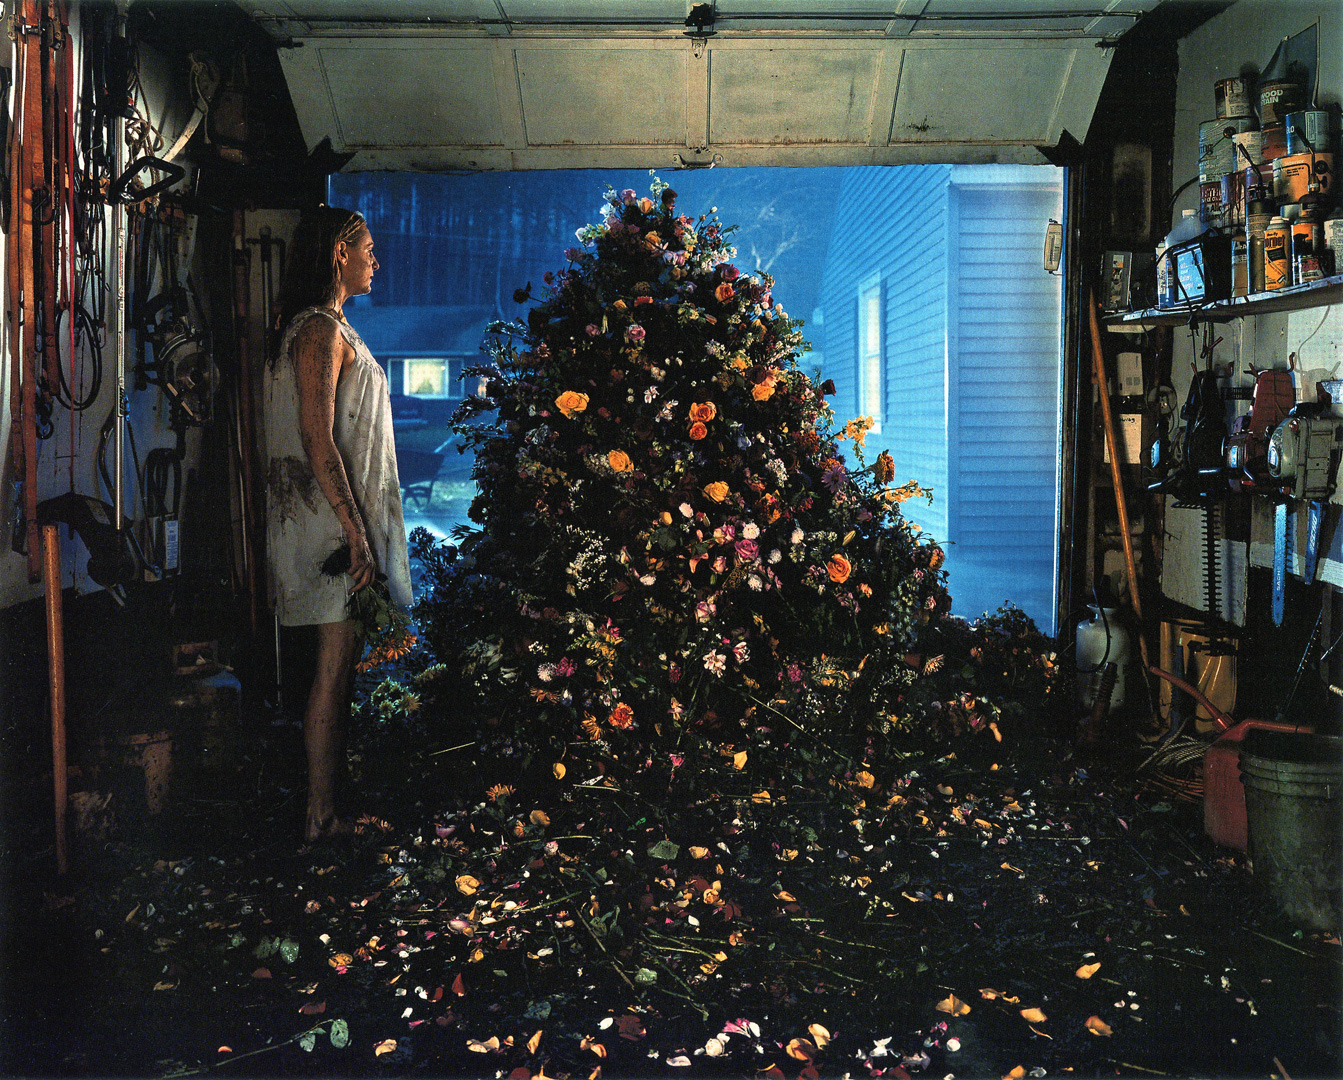 Gregory Crewdson - Untitled, 1999, digital chromogenic print